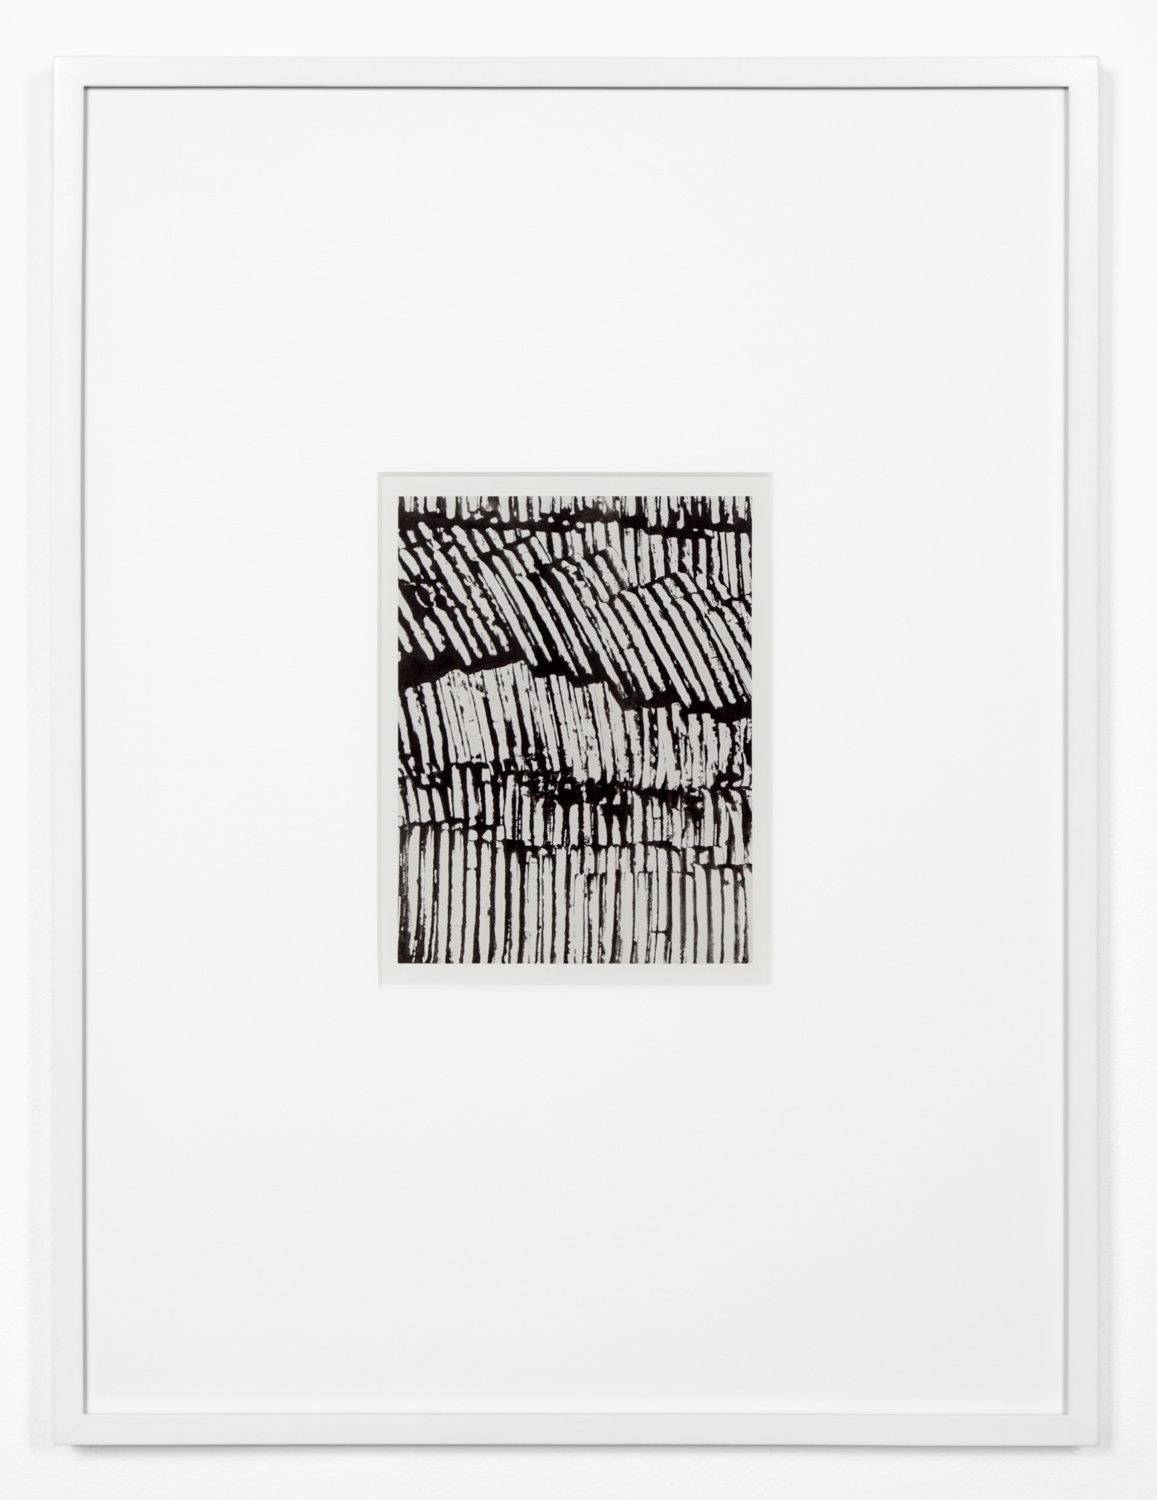 Anthony Pearson  Untitled (Solarization)  2012 Framed solarized silver gelatin photograph 17h x 12 ¾w x 1d in AP316